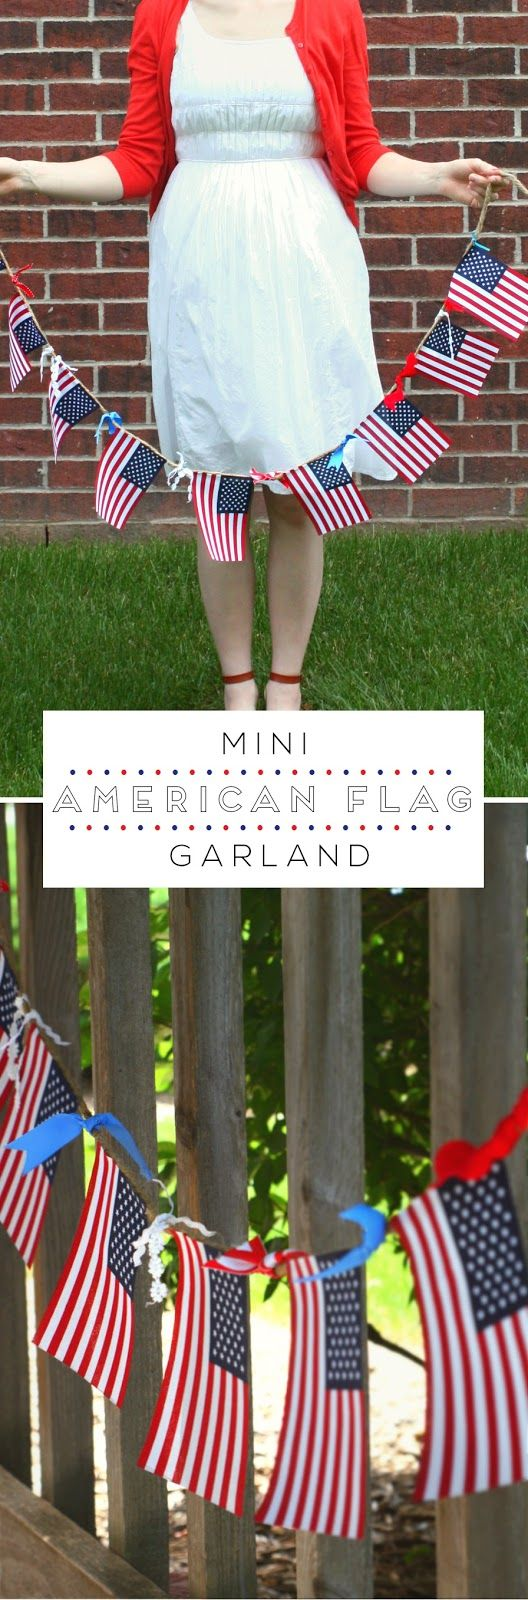 Mini American Flag Garland